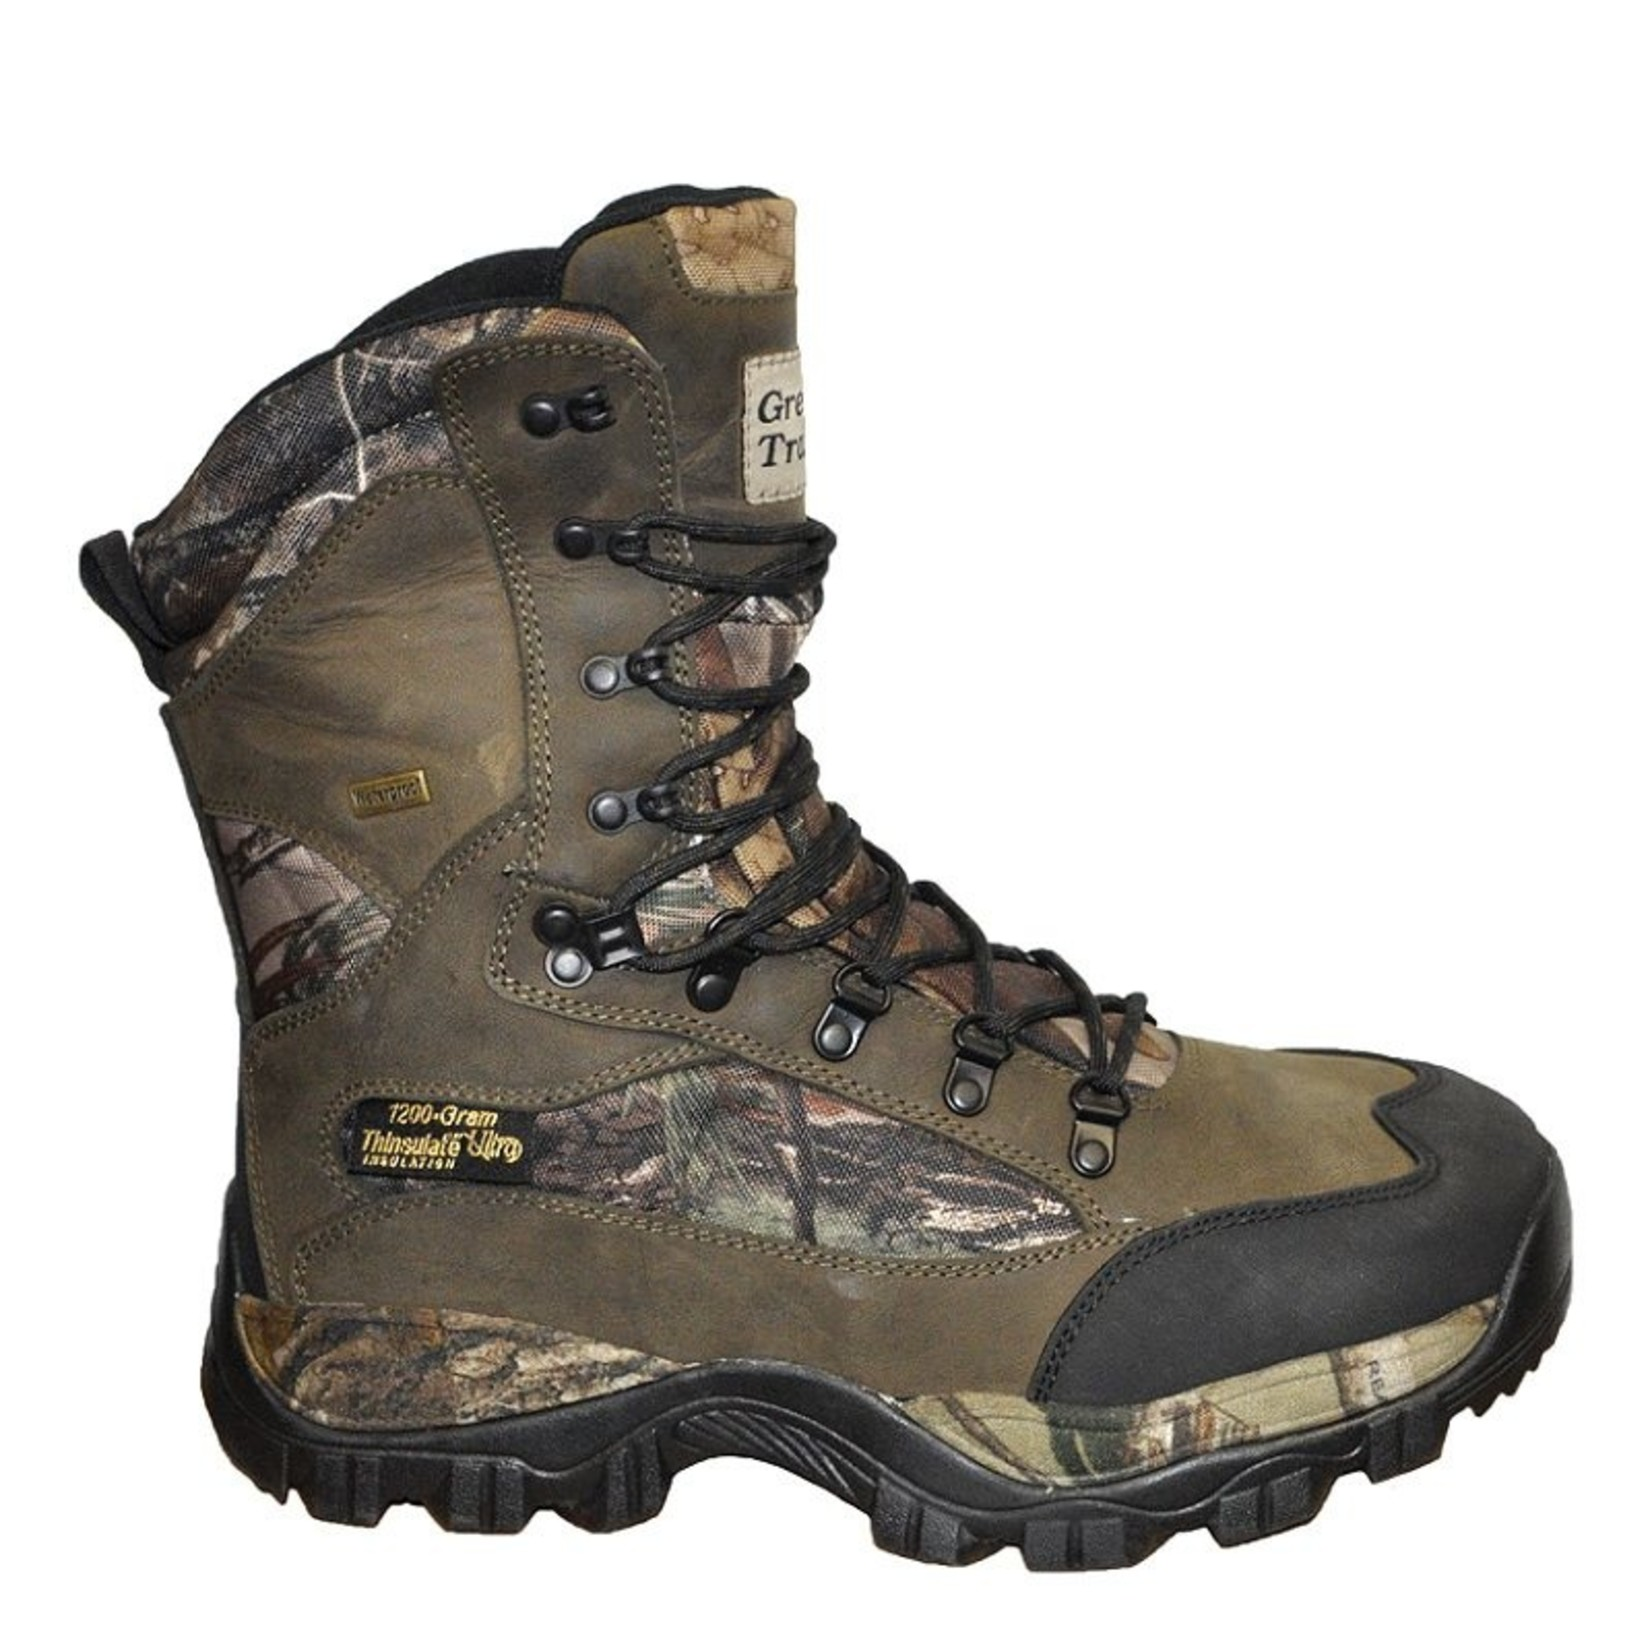 Green Trail Green Trail Camo Hunting Boots